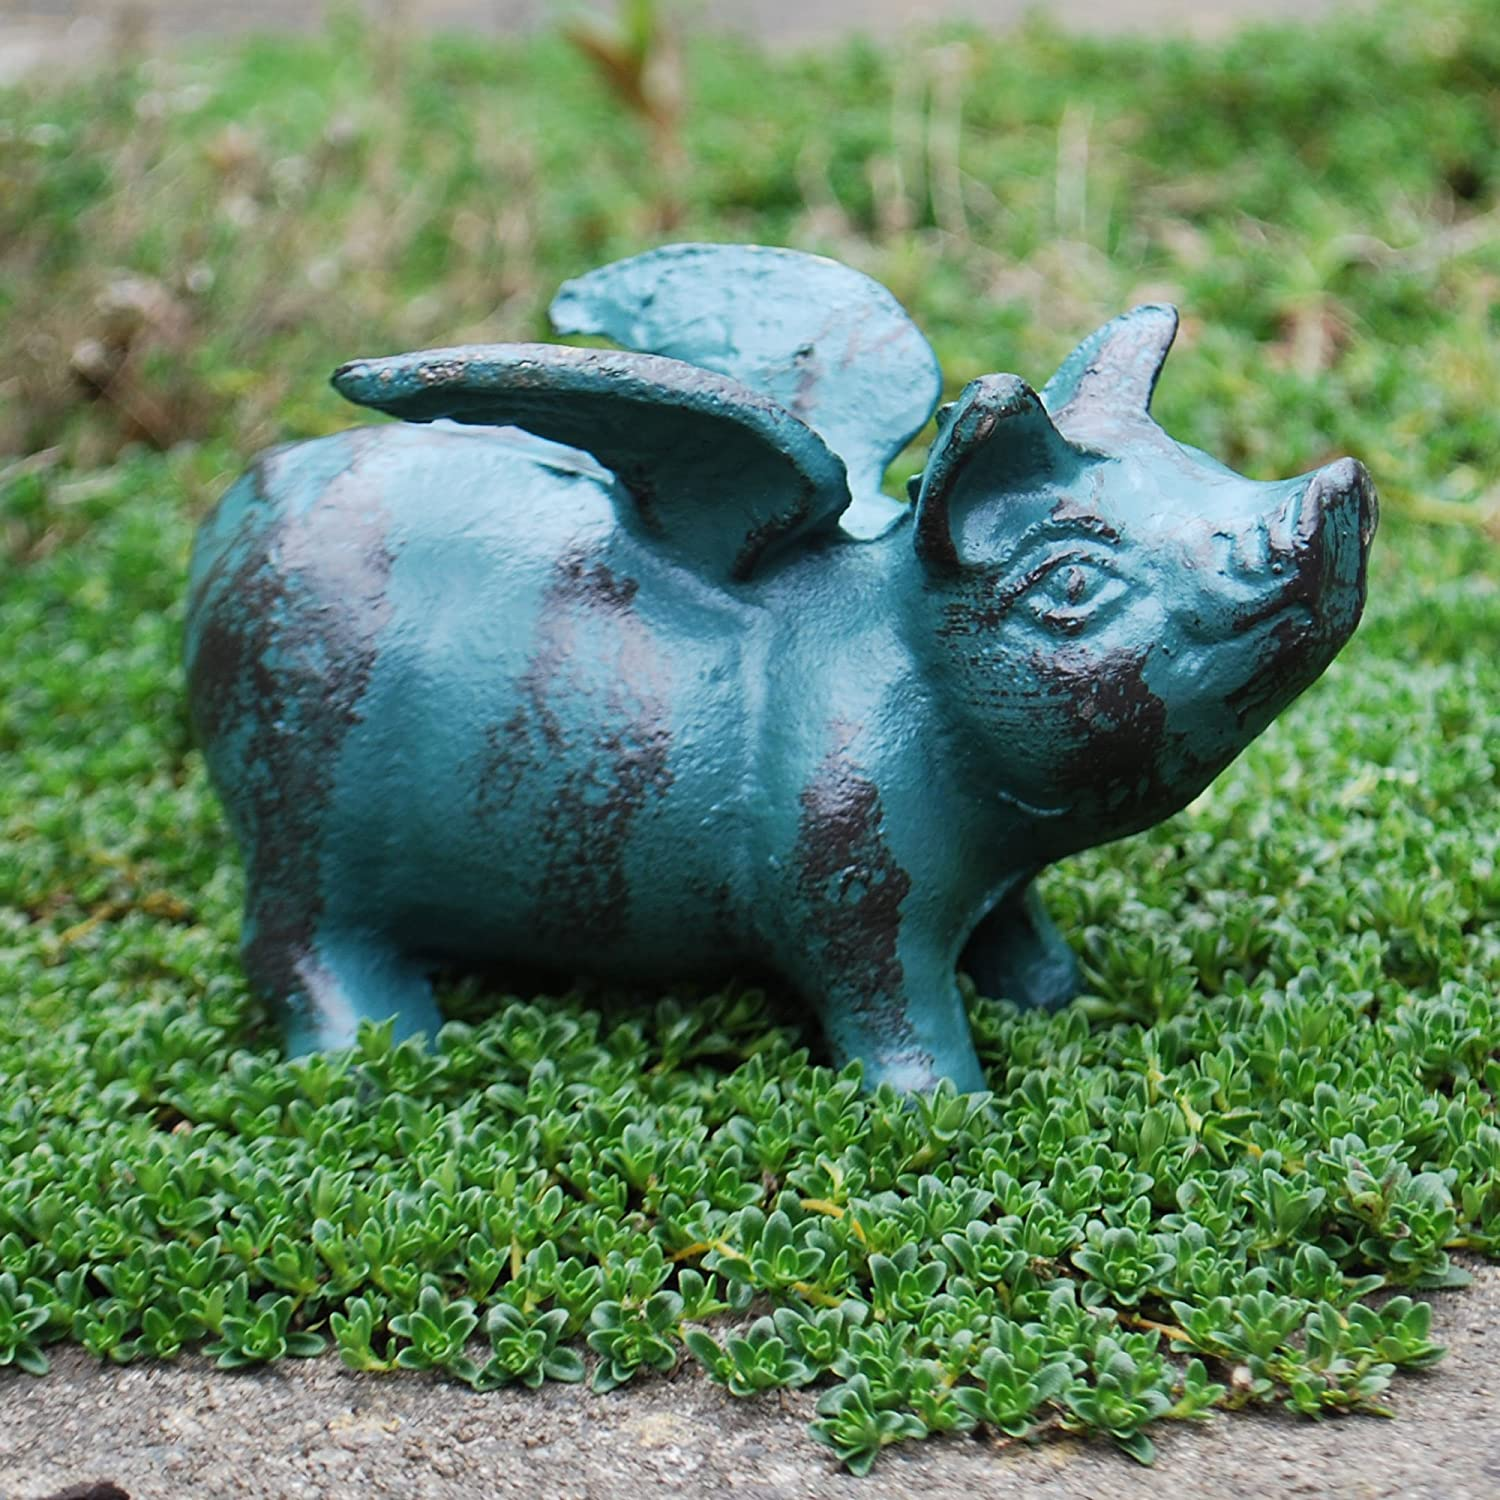 Pig lawn ornament - Verdigris Flying Pig Cast Iron Garden Animal Ornament Amazon Co Uk Garden Outdoors